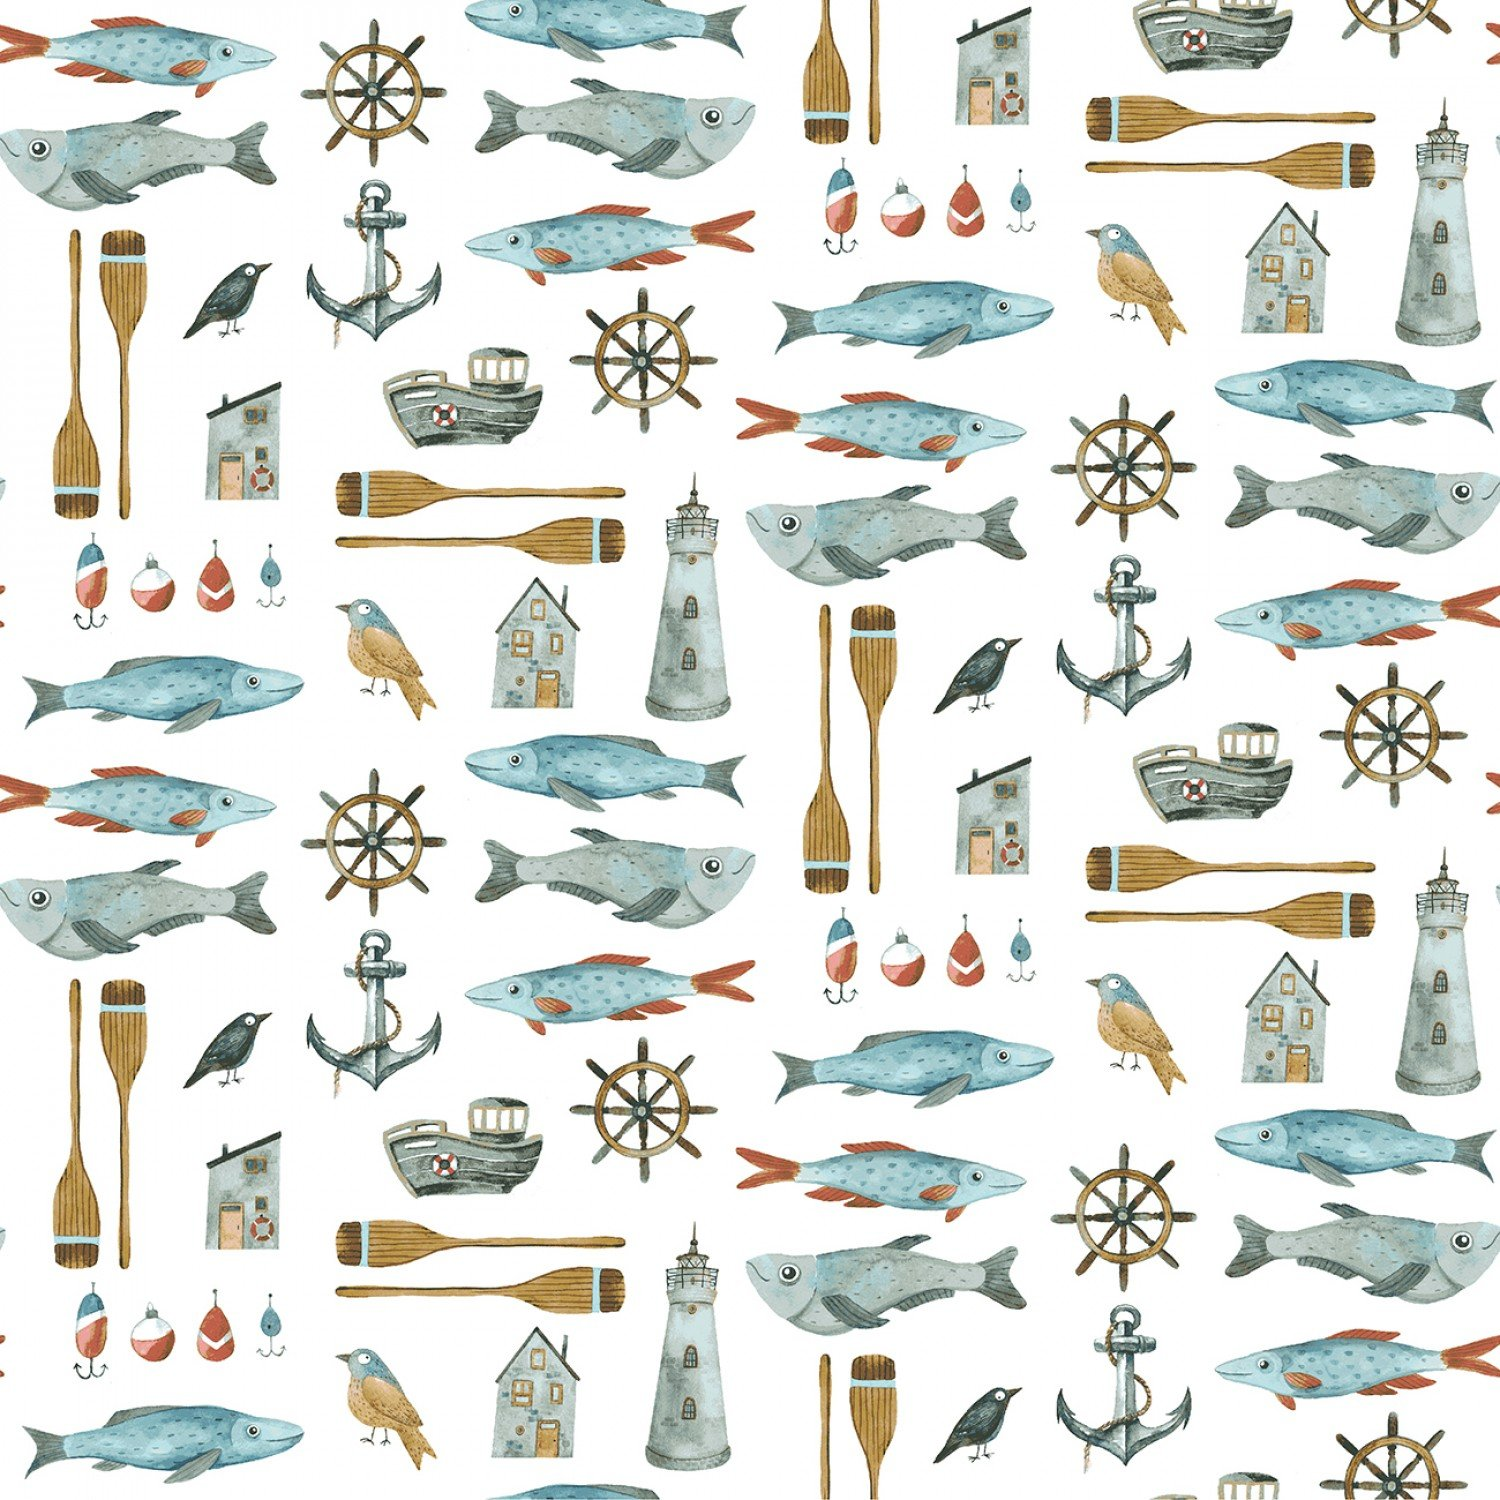 Fish, Boats, Anchors, Birds on White Fabric by the Yard